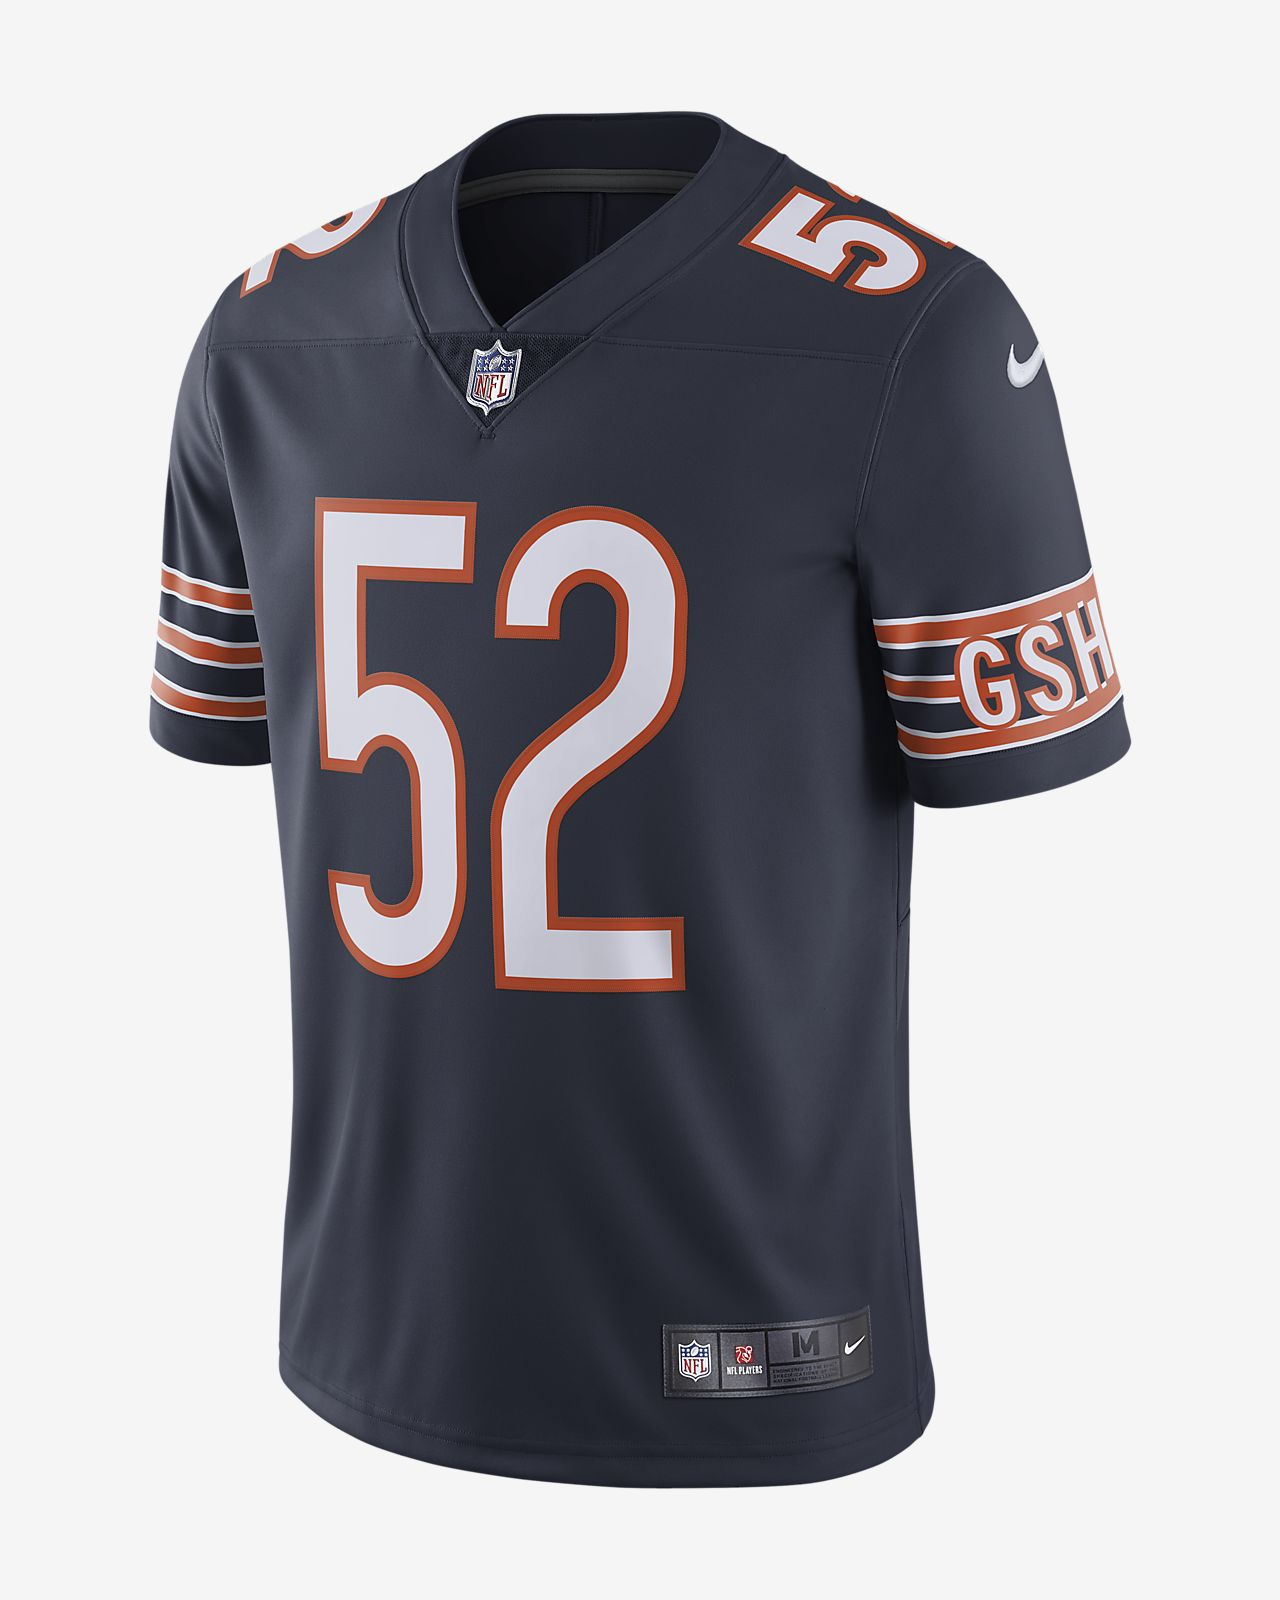 NFL Chicago Bears Limited (Khalil Mack) Men's Football Jersey